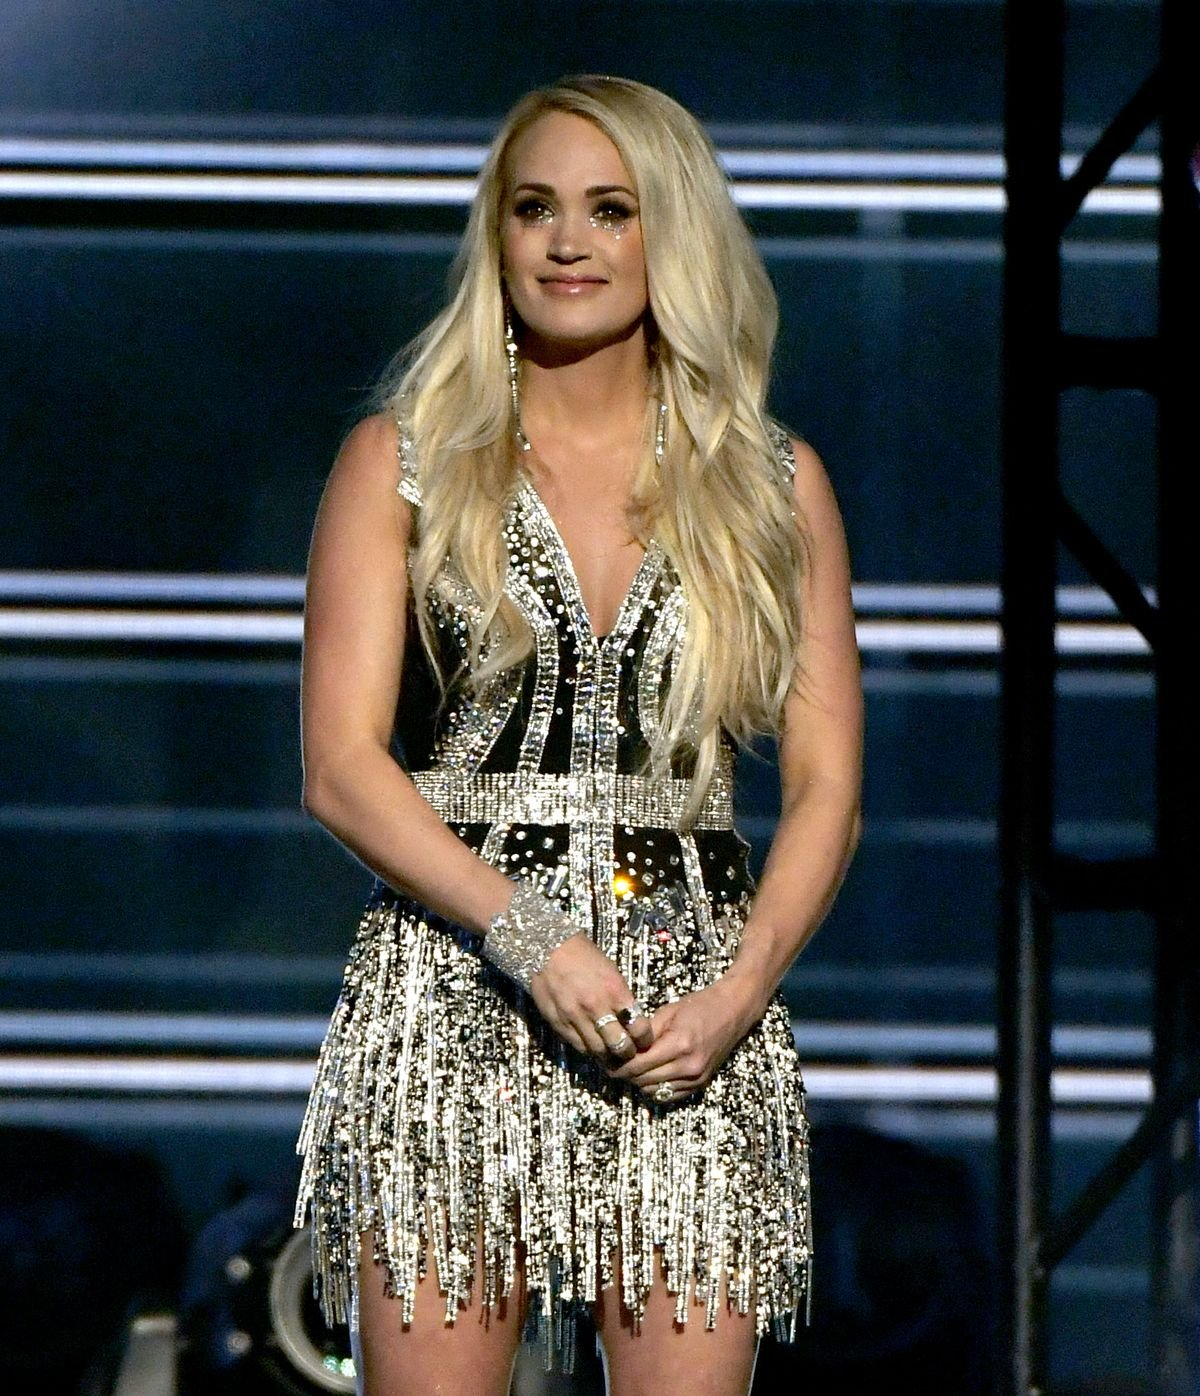 Carrie Underwood at the 53rd Academy of Country Music Awards on April 15, 2018 | Photo: Getty Images